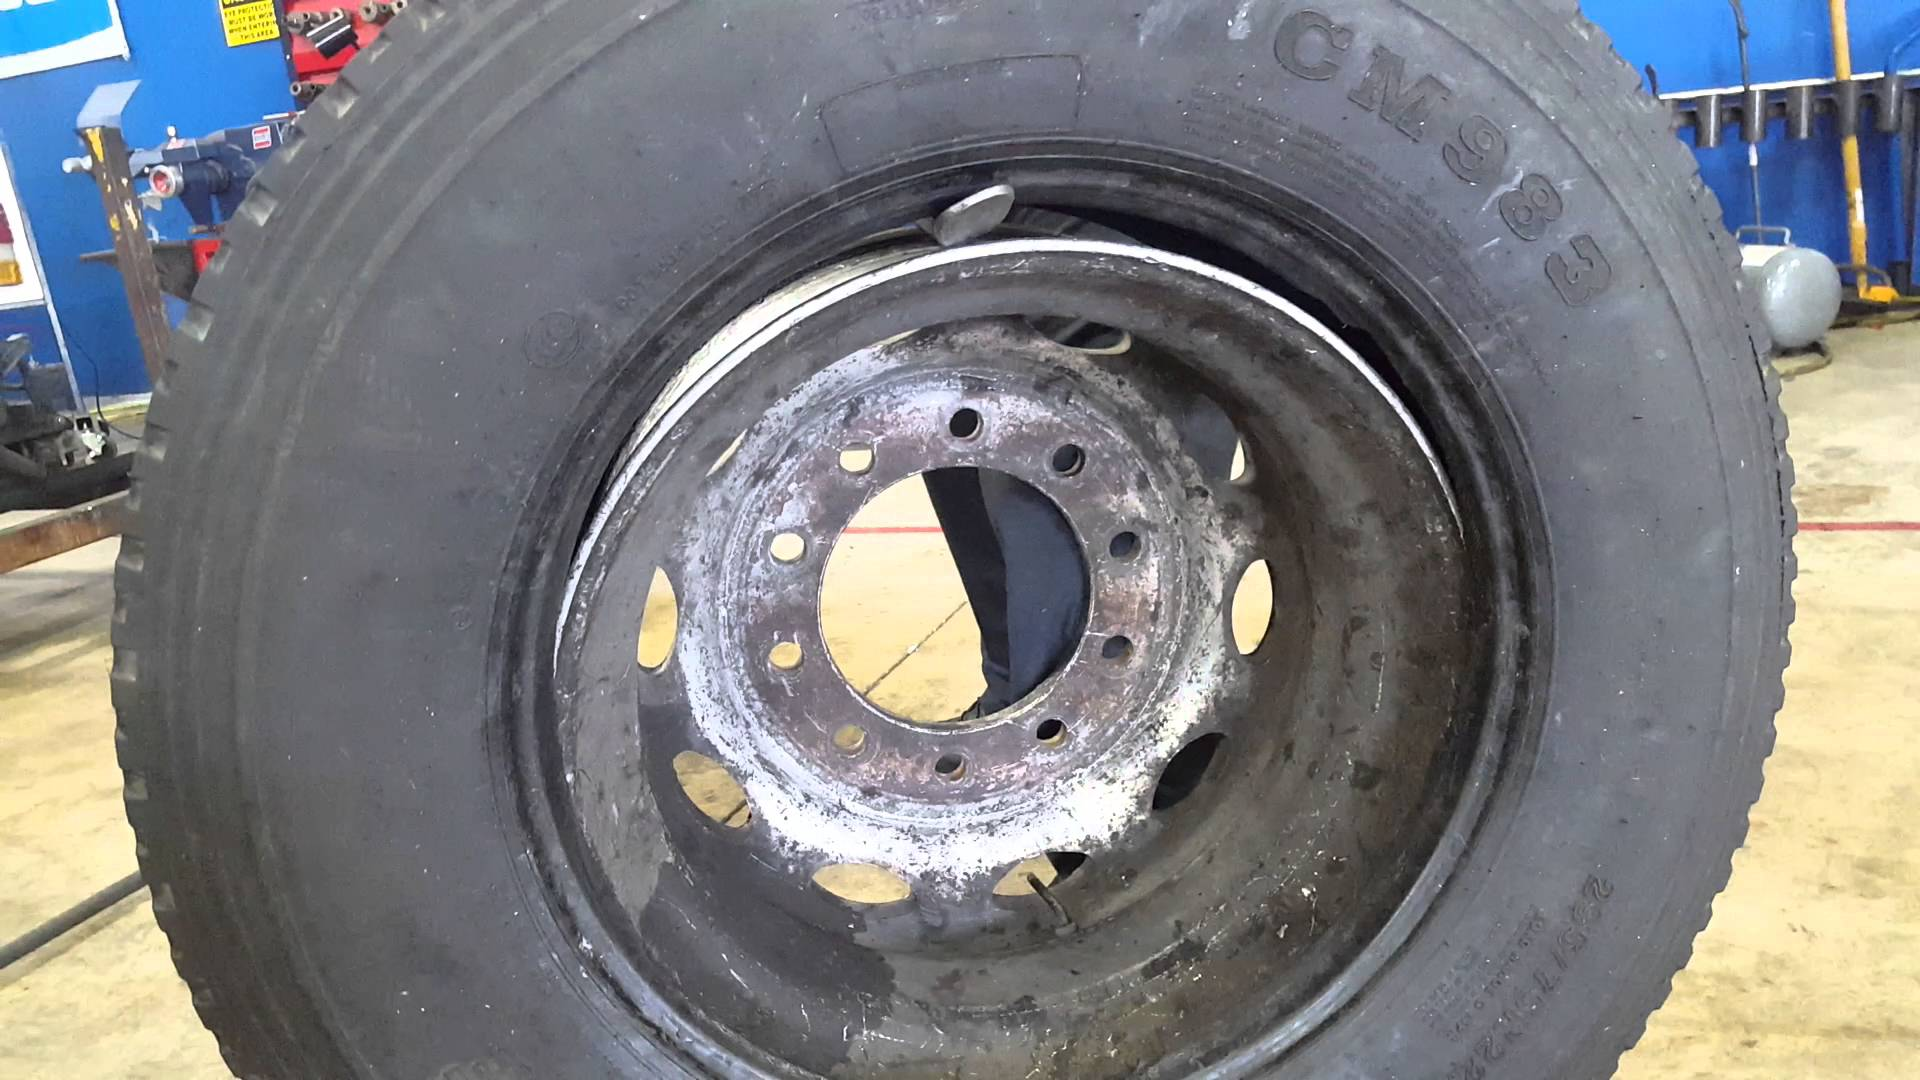 Mounting and dismounting a Semi truck tire